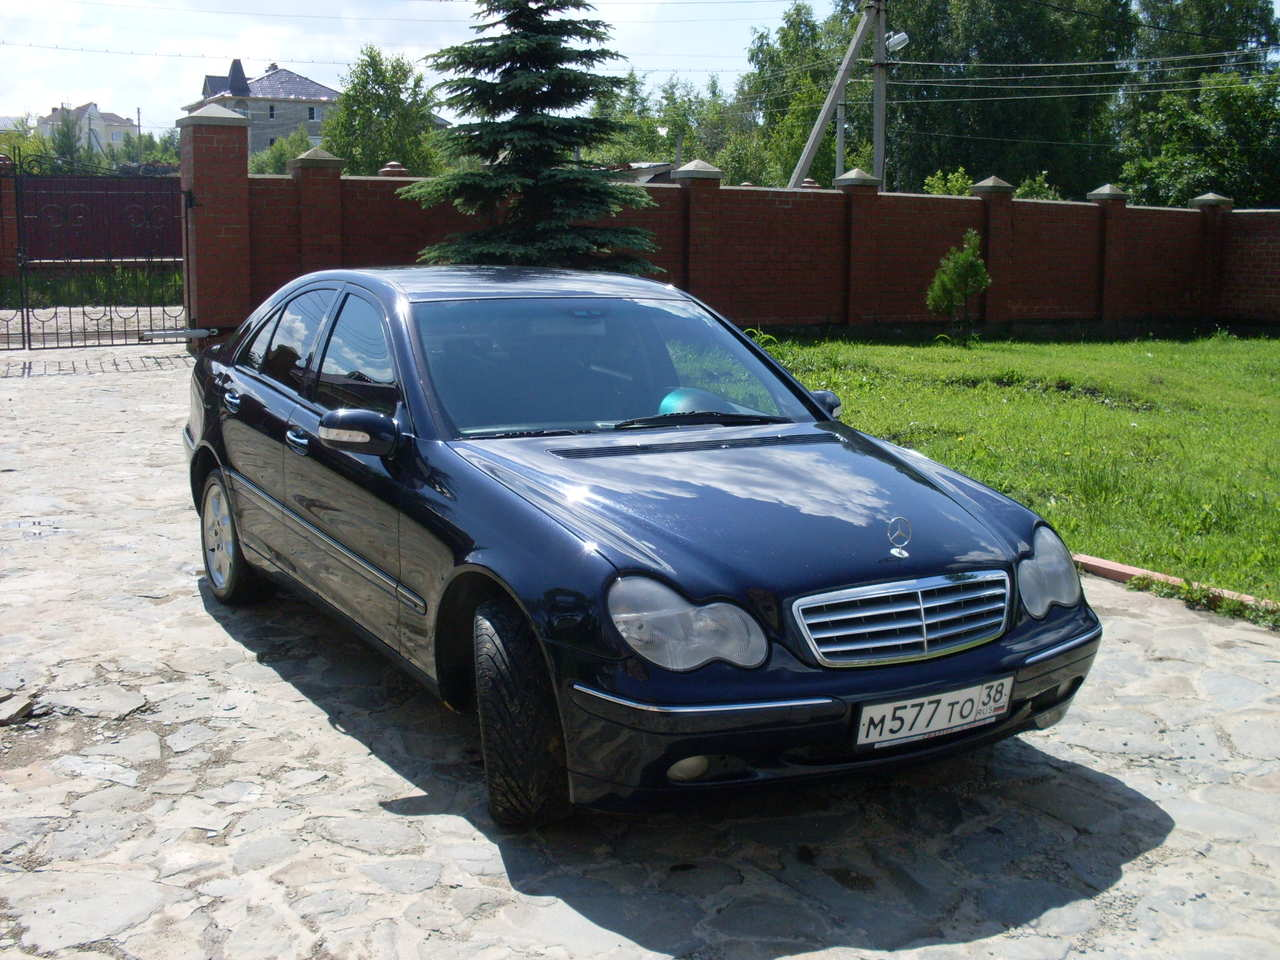 used 2000 mercedes benz c class photos 2000cc gasoline fr or rr automatic for sale. Black Bedroom Furniture Sets. Home Design Ideas